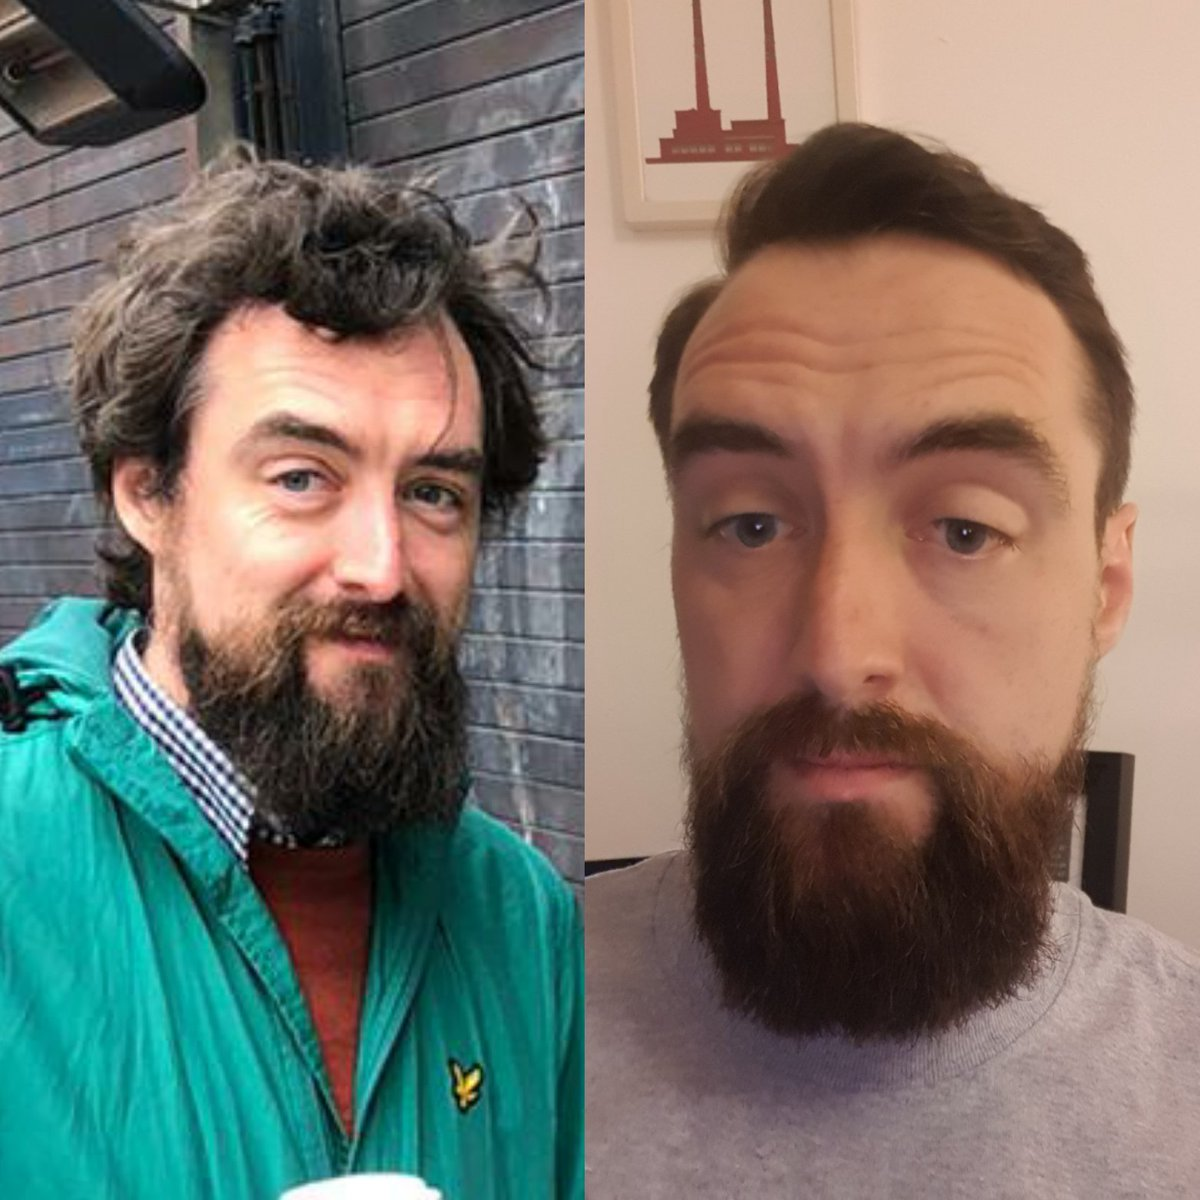 The difference a day and a haircut makes.